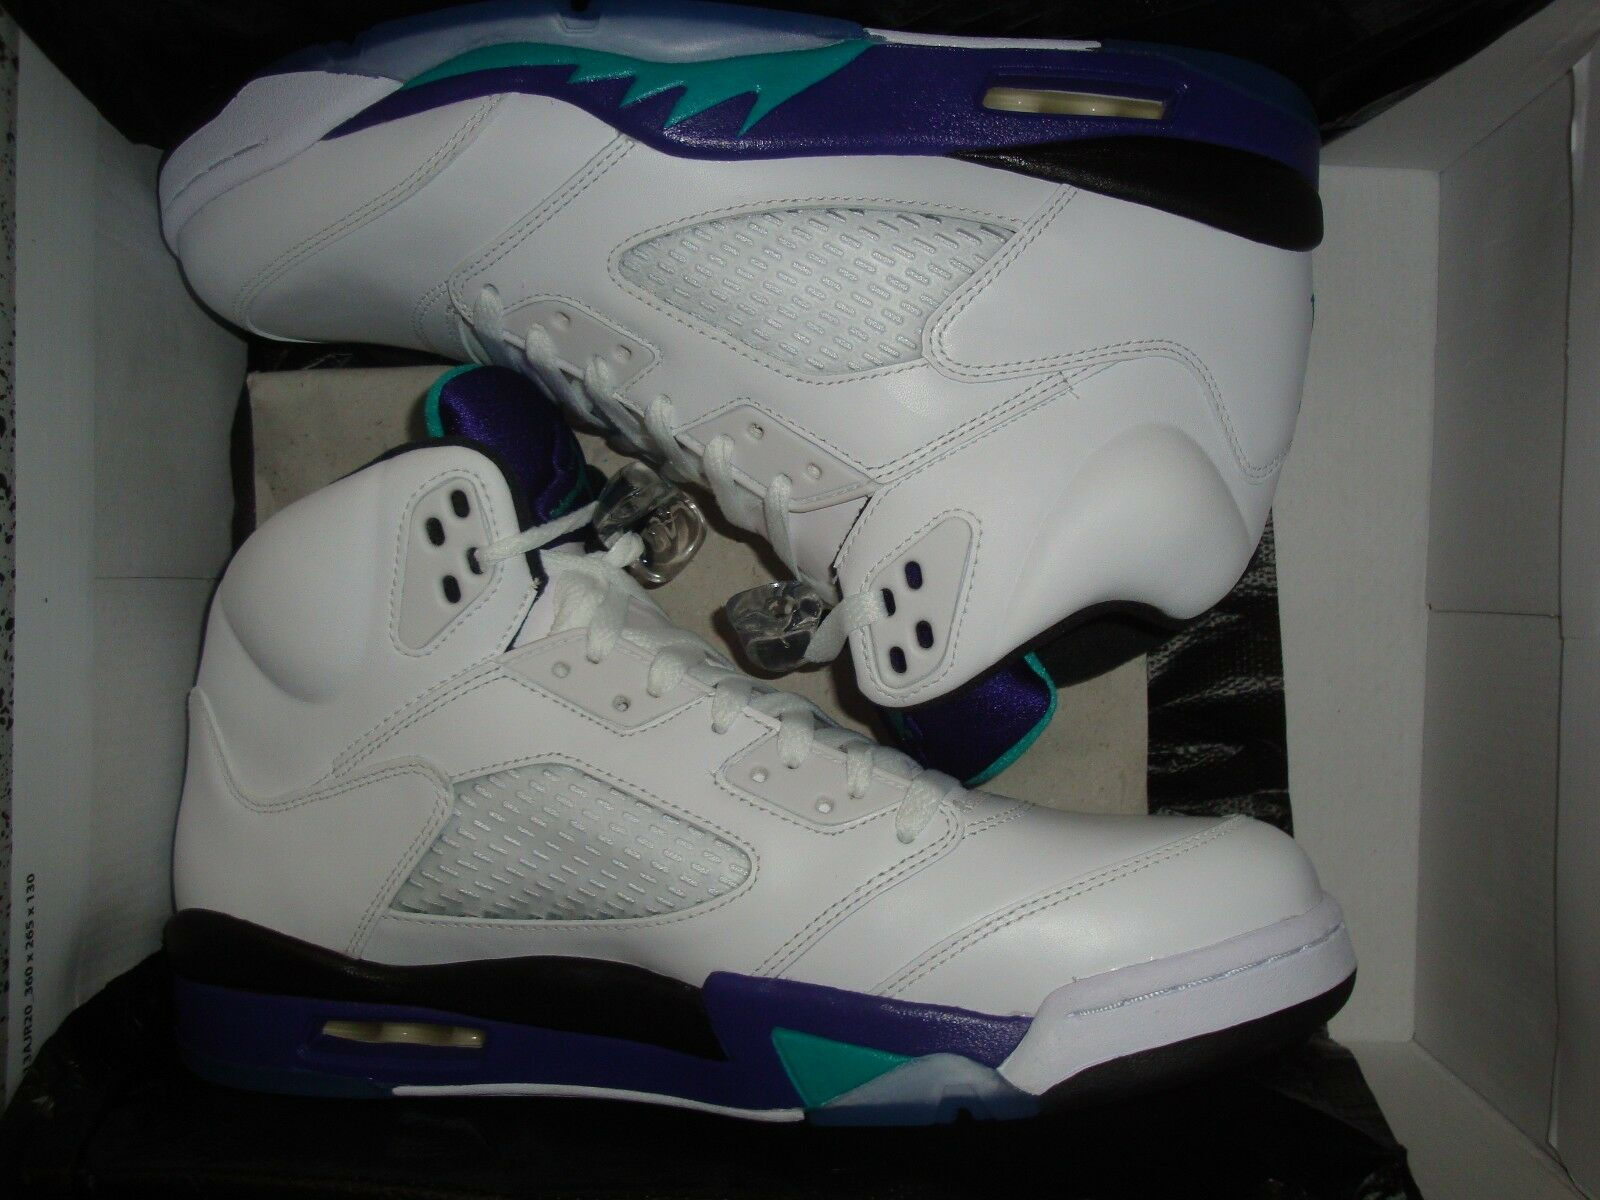 NEW IN BOX 2013 NIKE AIR JORDAN RETRO 5 V GRAPE GRAPES MEN'S SIZE 11 W/RECEIPT